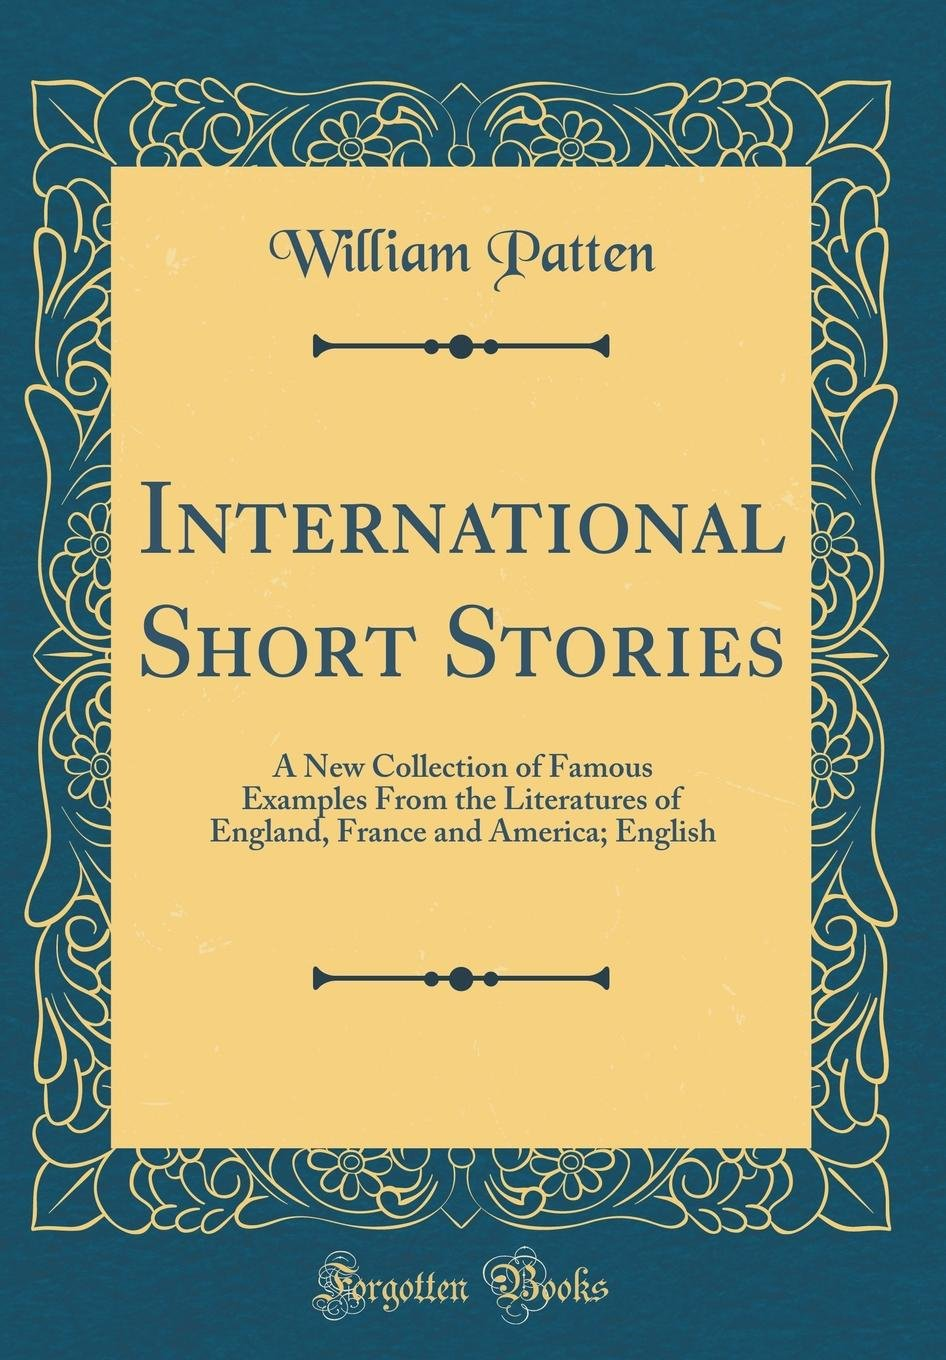 International Short Stories: A New Collection of Famous Examples from the Literatures of England, France and America; English (Classic Reprint) ebook